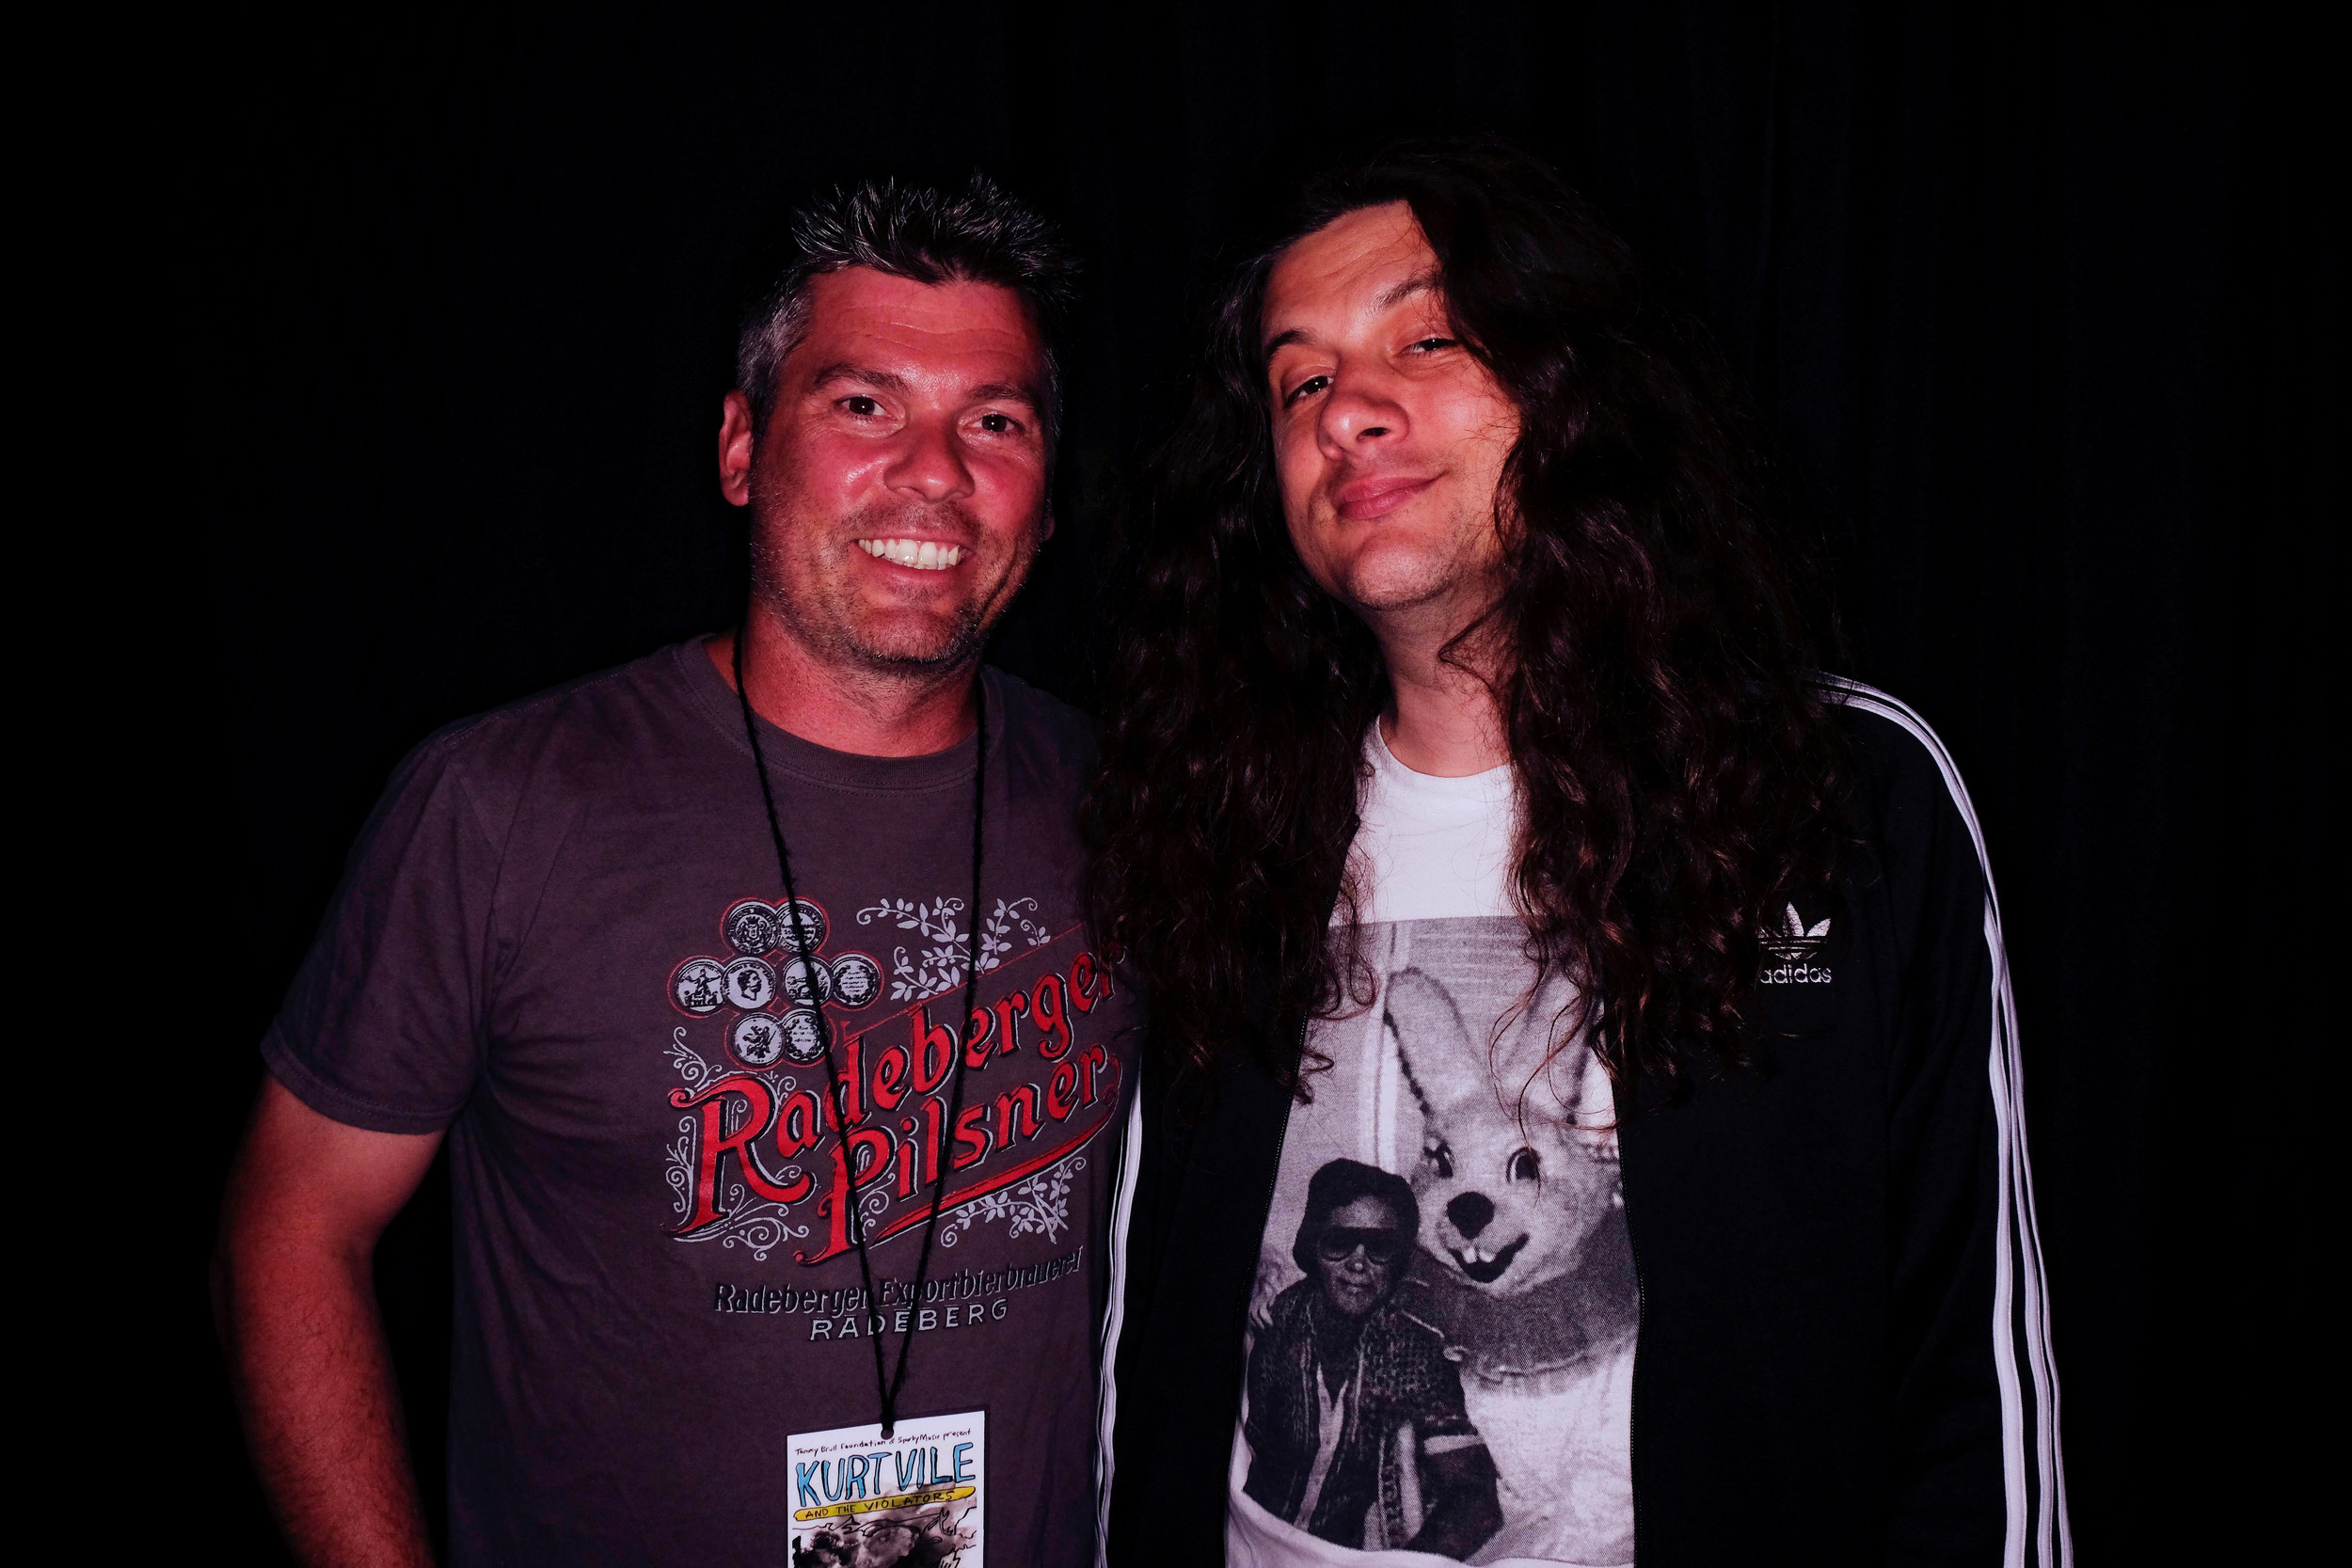 Martin Brull, left, co-founder of the Tommy Brull Foundation, which organized the Shine A Light Music Series show on June 23, with this year's headliner, Kurt Vile.